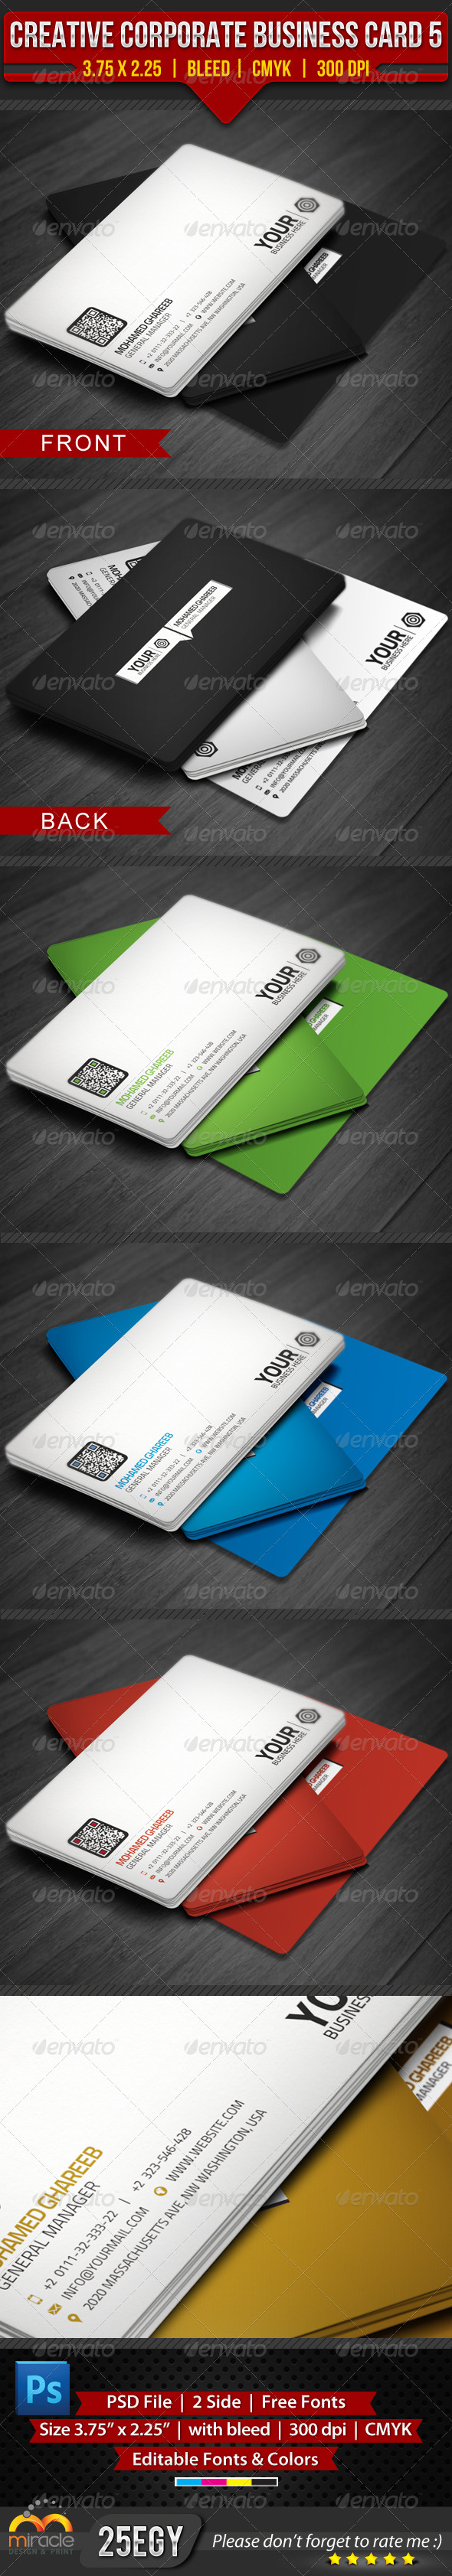 GraphicRiver Creative Corporate Business Card 5 4105464